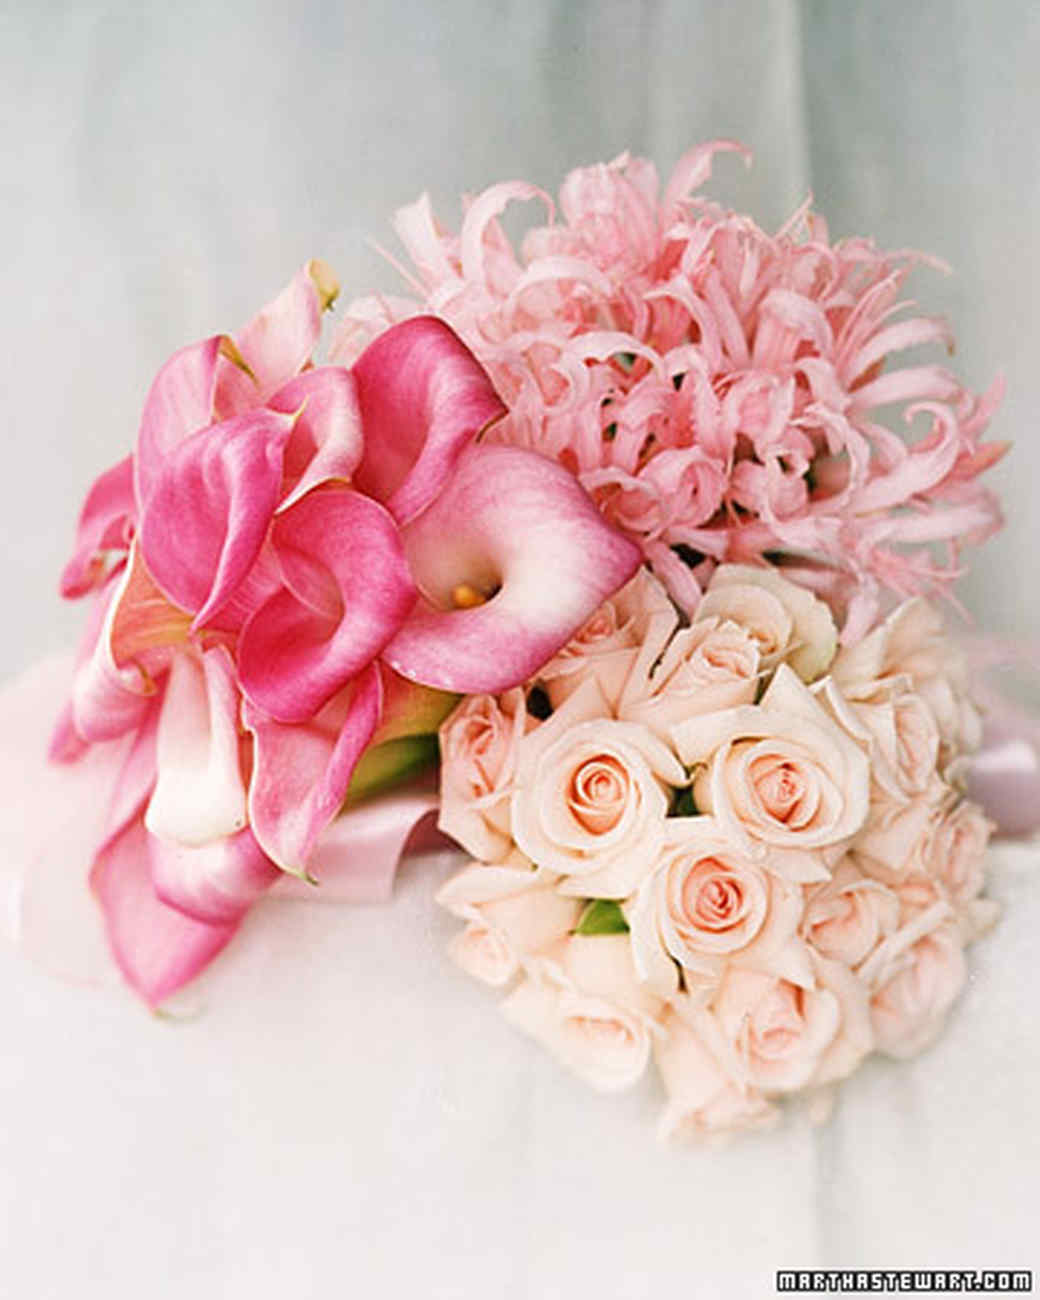 Bouquets for Brides and Bridesmaids: A Profusion of Pinks